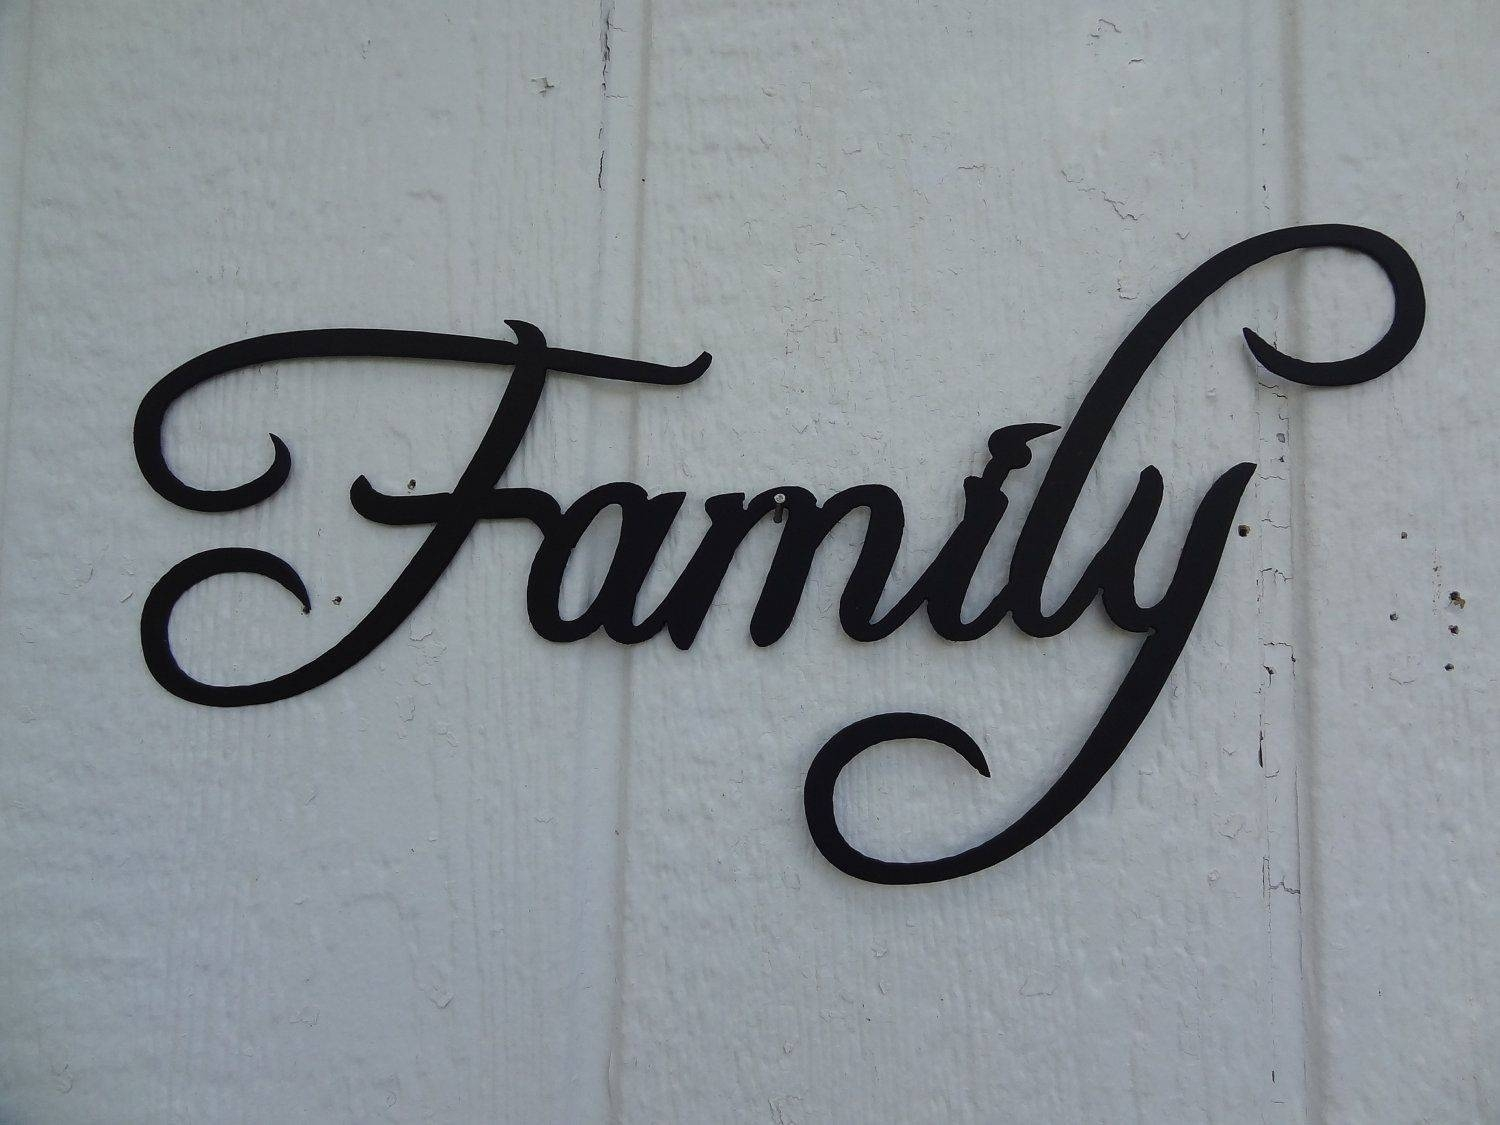 Hand Made Family Word Decorative Metal Wall Art Home Decorsay With Regard To Recent Metal Wall Art Words (View 19 of 20)